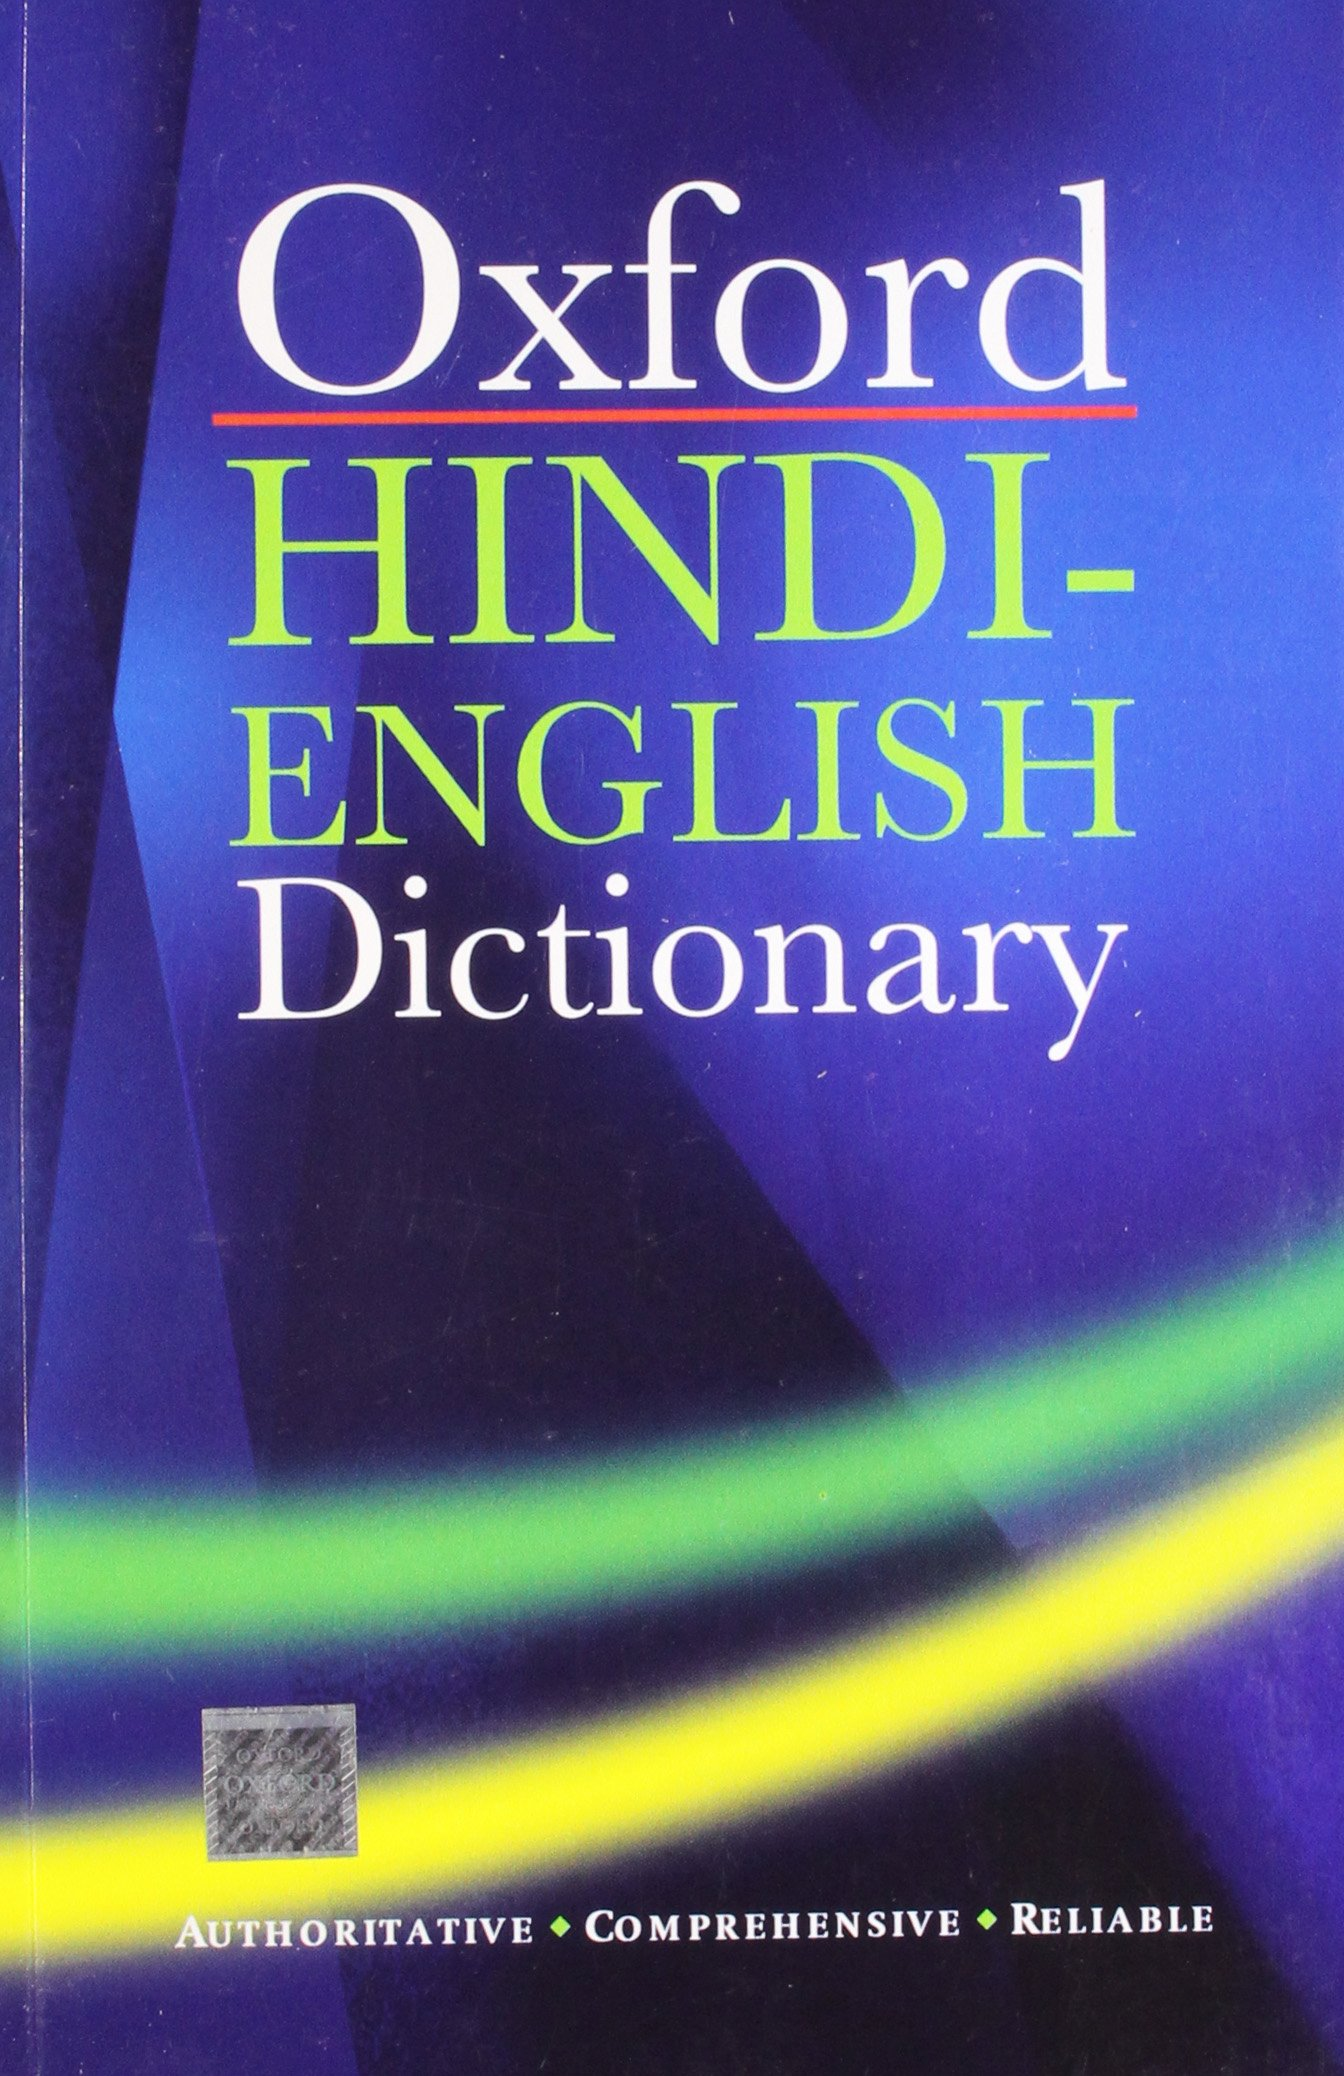 Oxford Hindi English Dictionary And Edition Mcgregor 8601405316103 Amazon Books